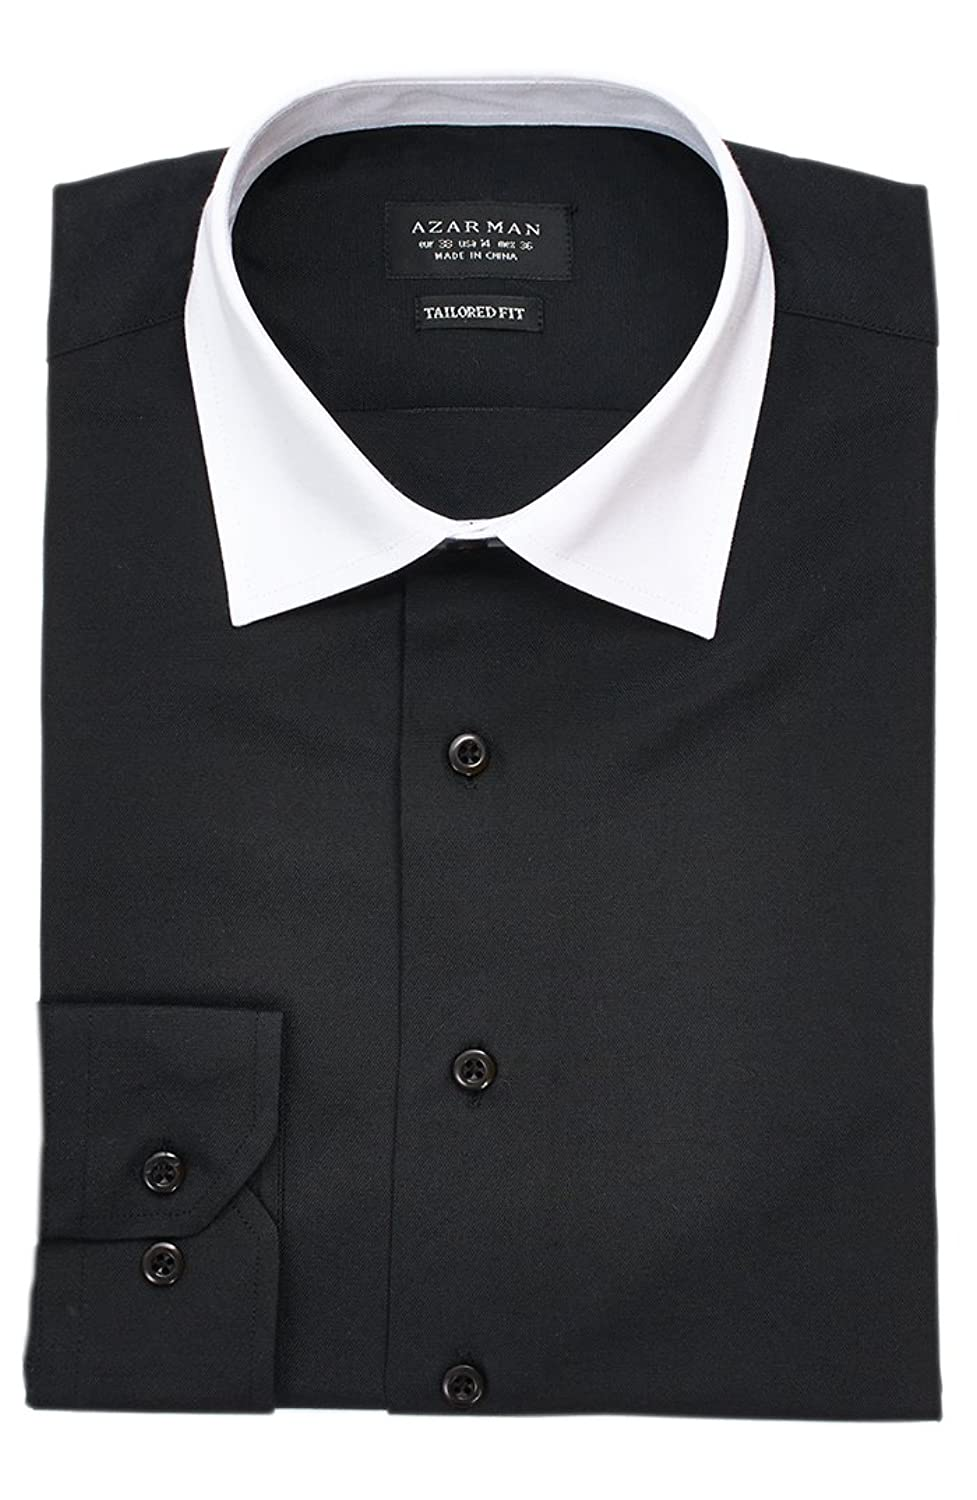 Black Dress Shirt White Collar